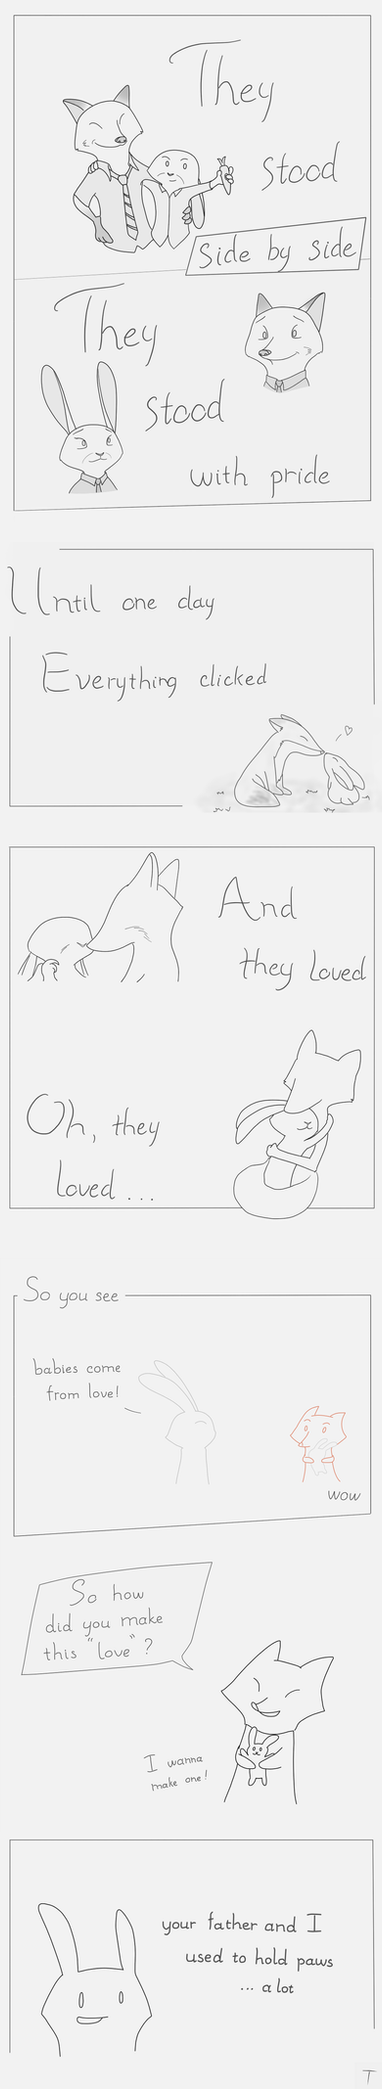 The bunny and the fox (part 2) by toannghe1997